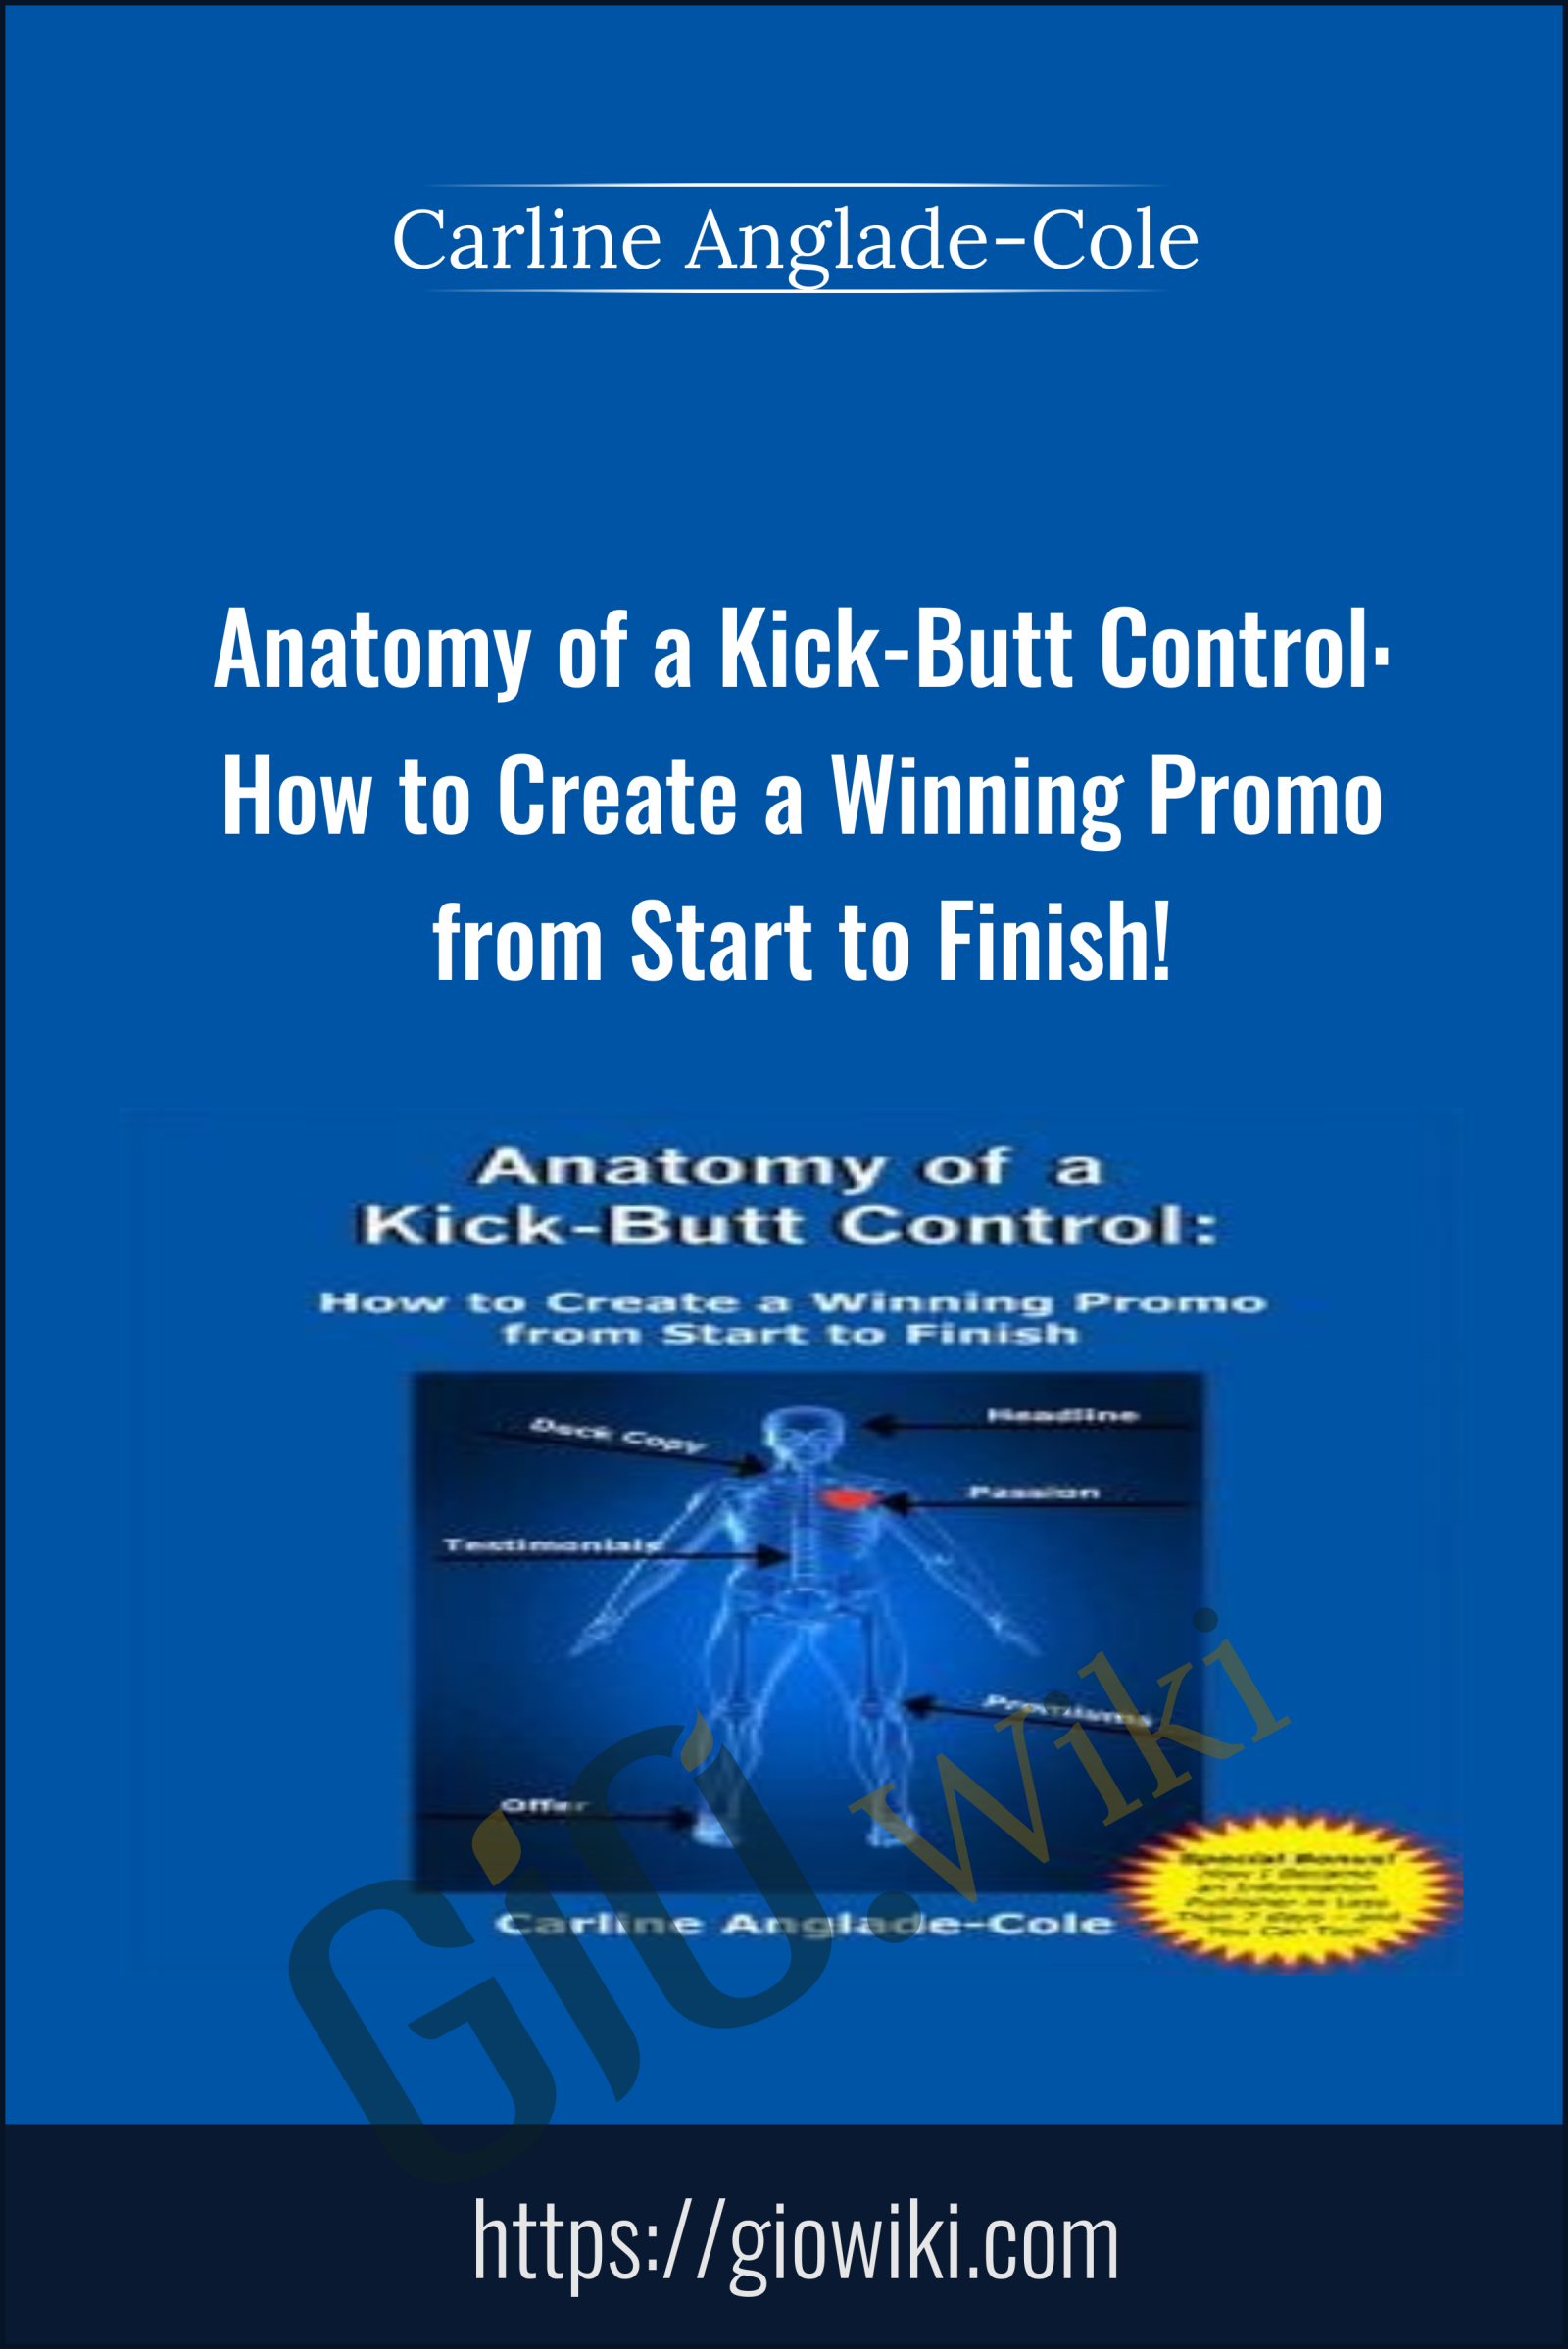 Anatomy of a Kick-Butt Control: How to Create a Winning Promo from Start to Finish! - Carline Anglade-Cole